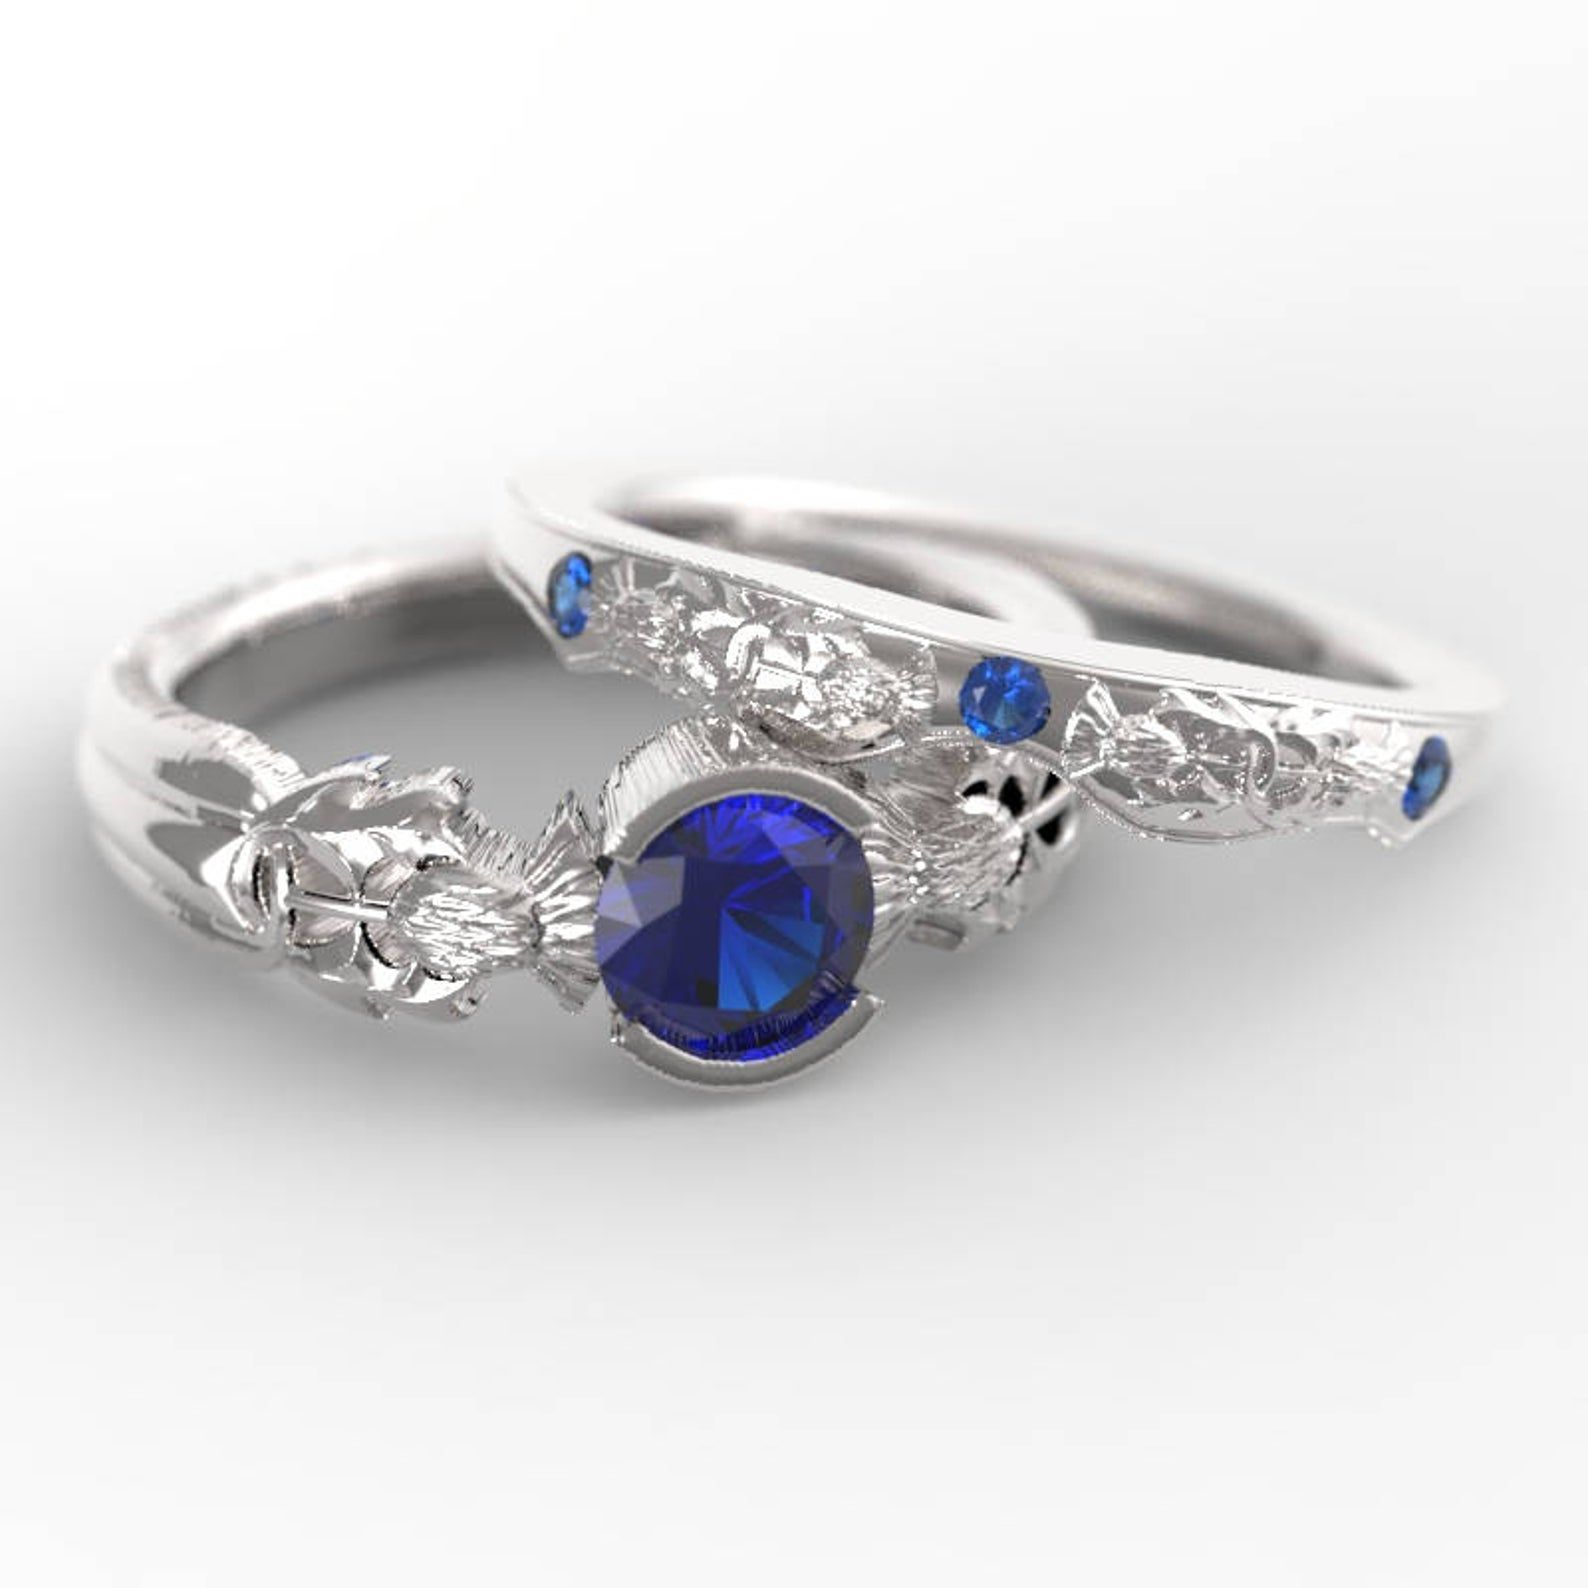 Thistle Engagement Ring Set, Sterling Silver Sapphire Ring